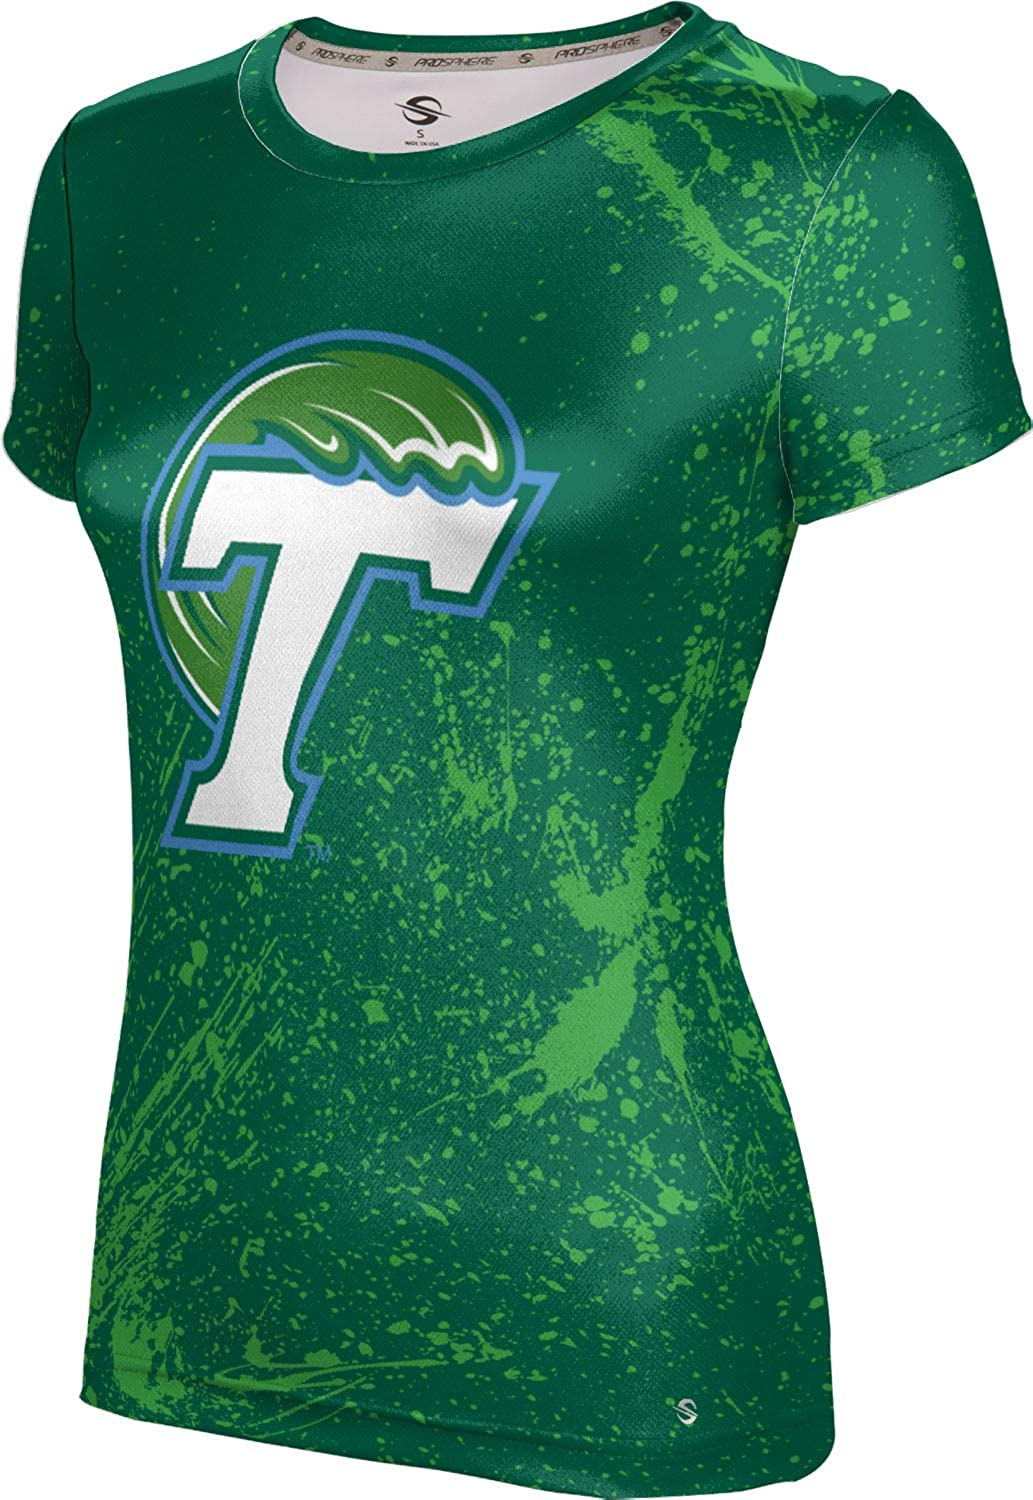 ProSphere Tulane University Girls Performance T-Shirt Splatter